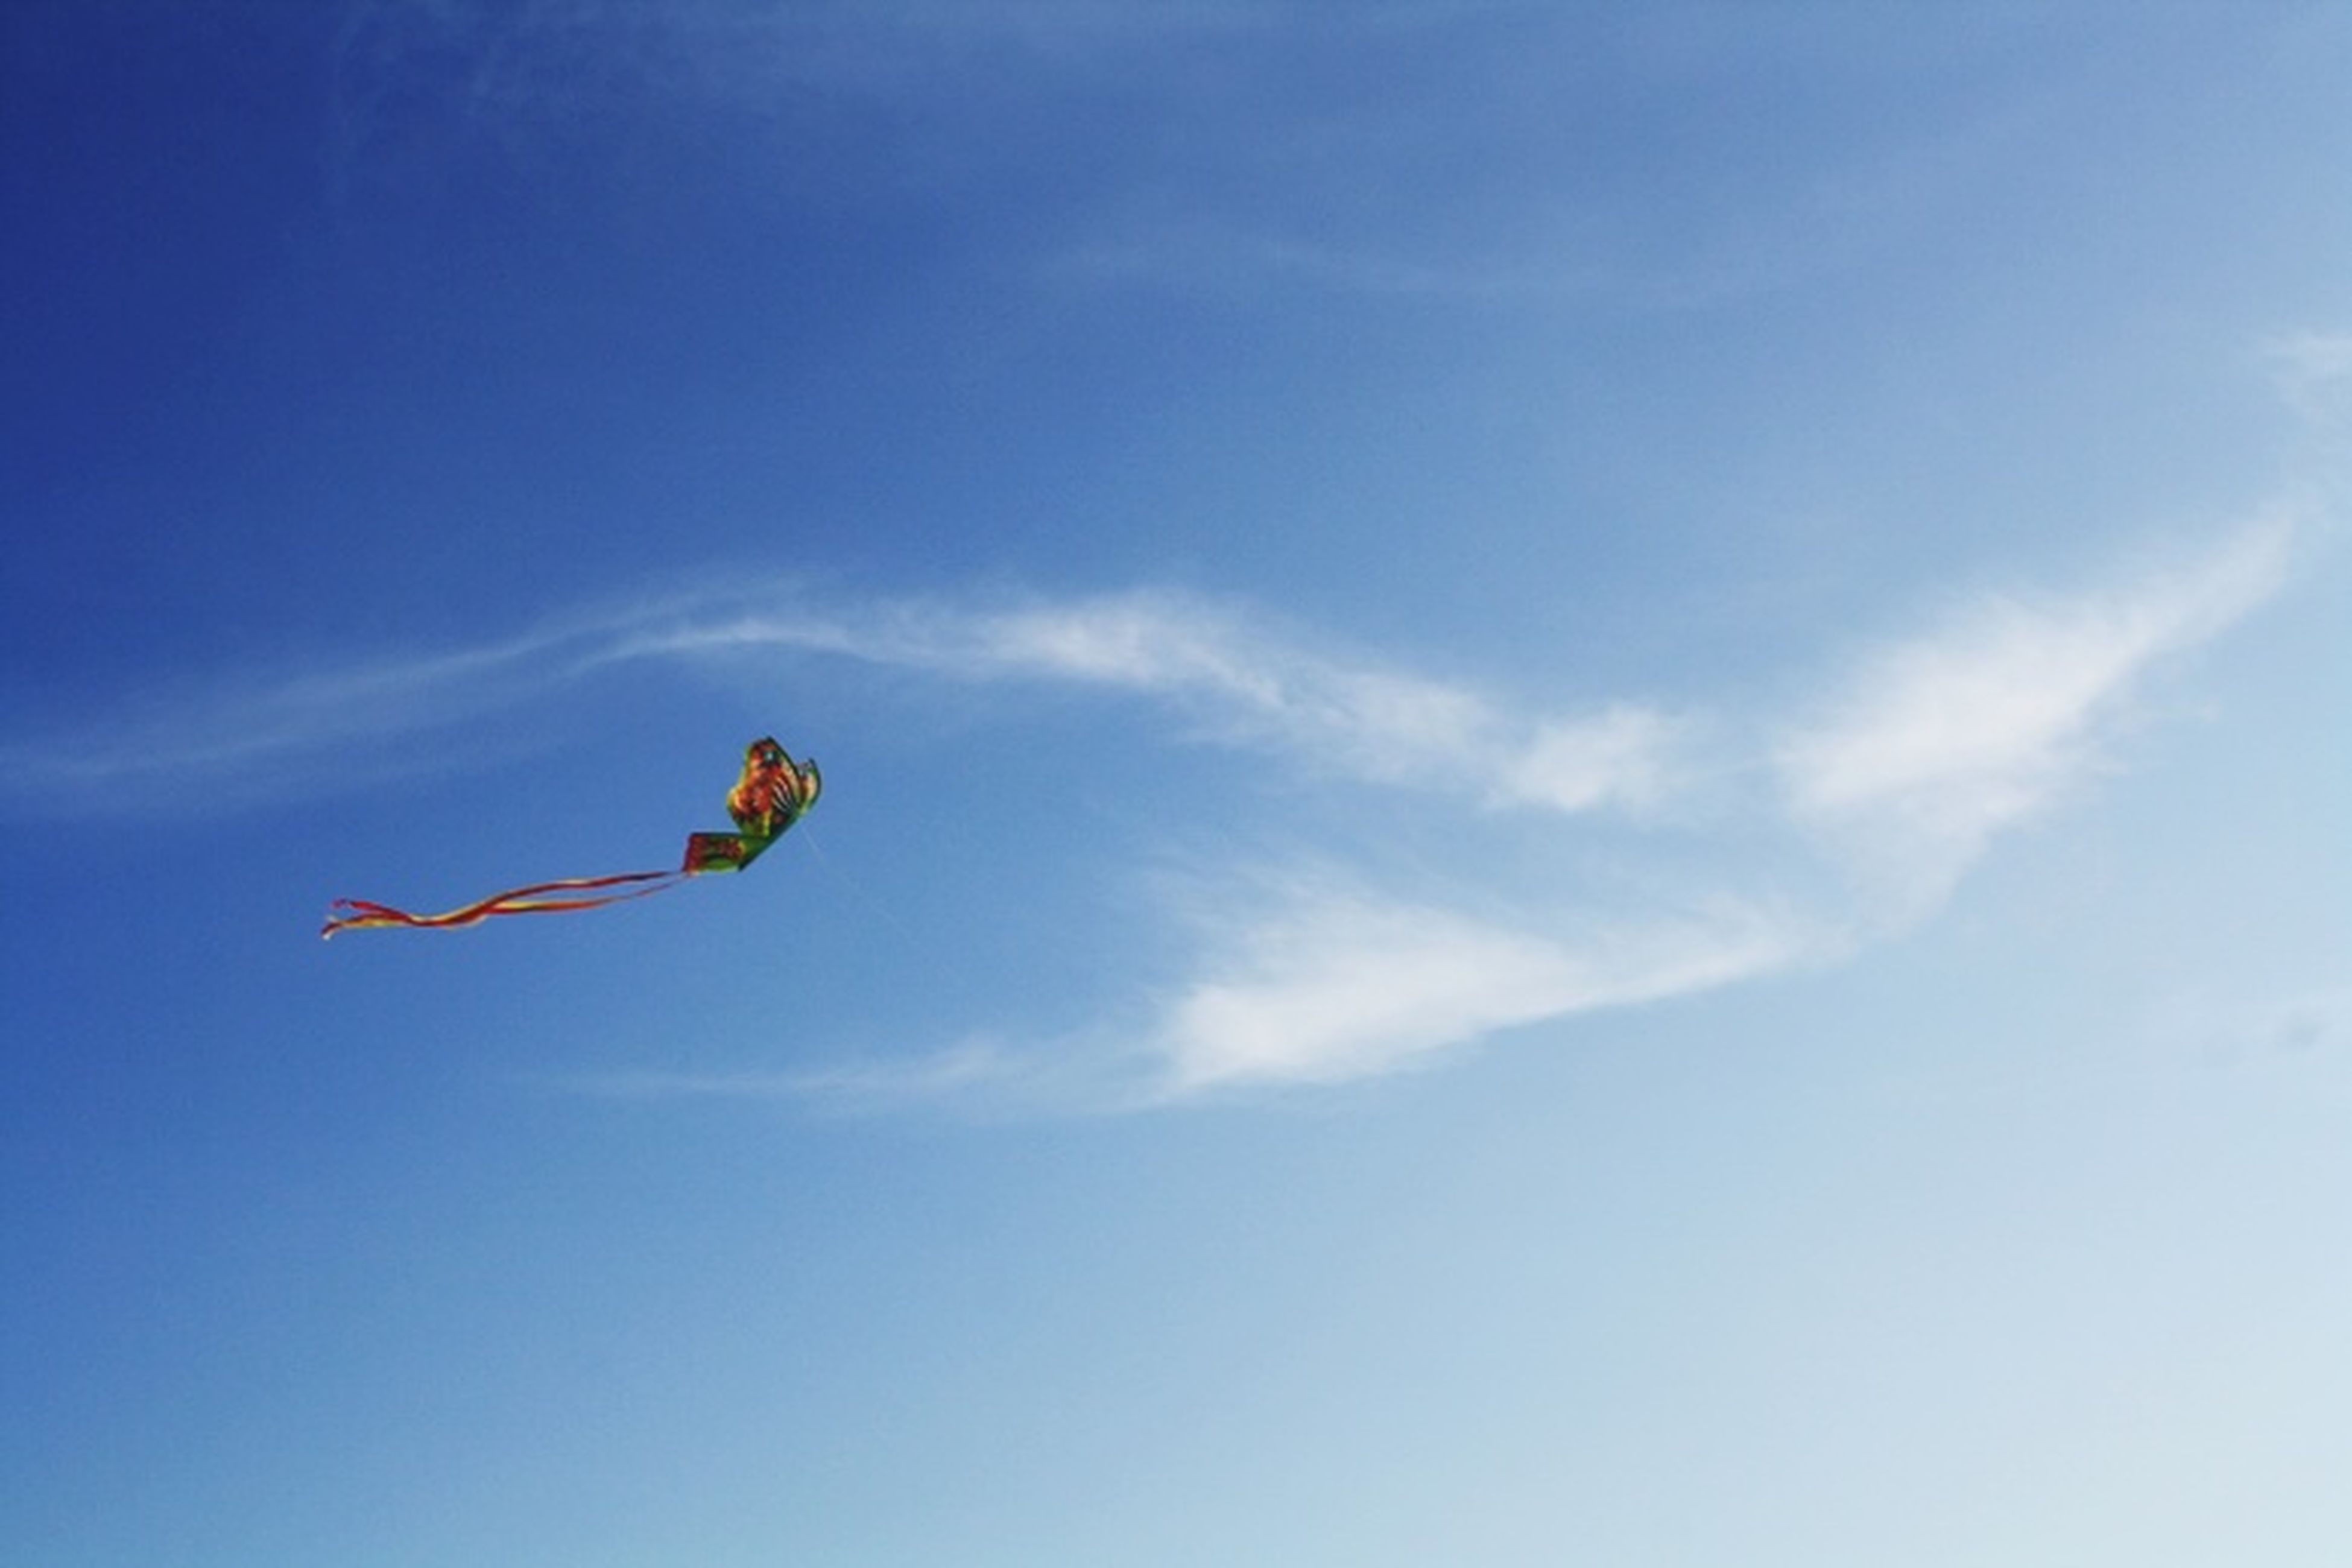 low angle view, flying, mid-air, blue, sky, cloud - sky, transportation, freedom, motion, day, kite - toy, air vehicle, outdoors, extreme sports, on the move, nature, cloud, adventure, parachute, fun